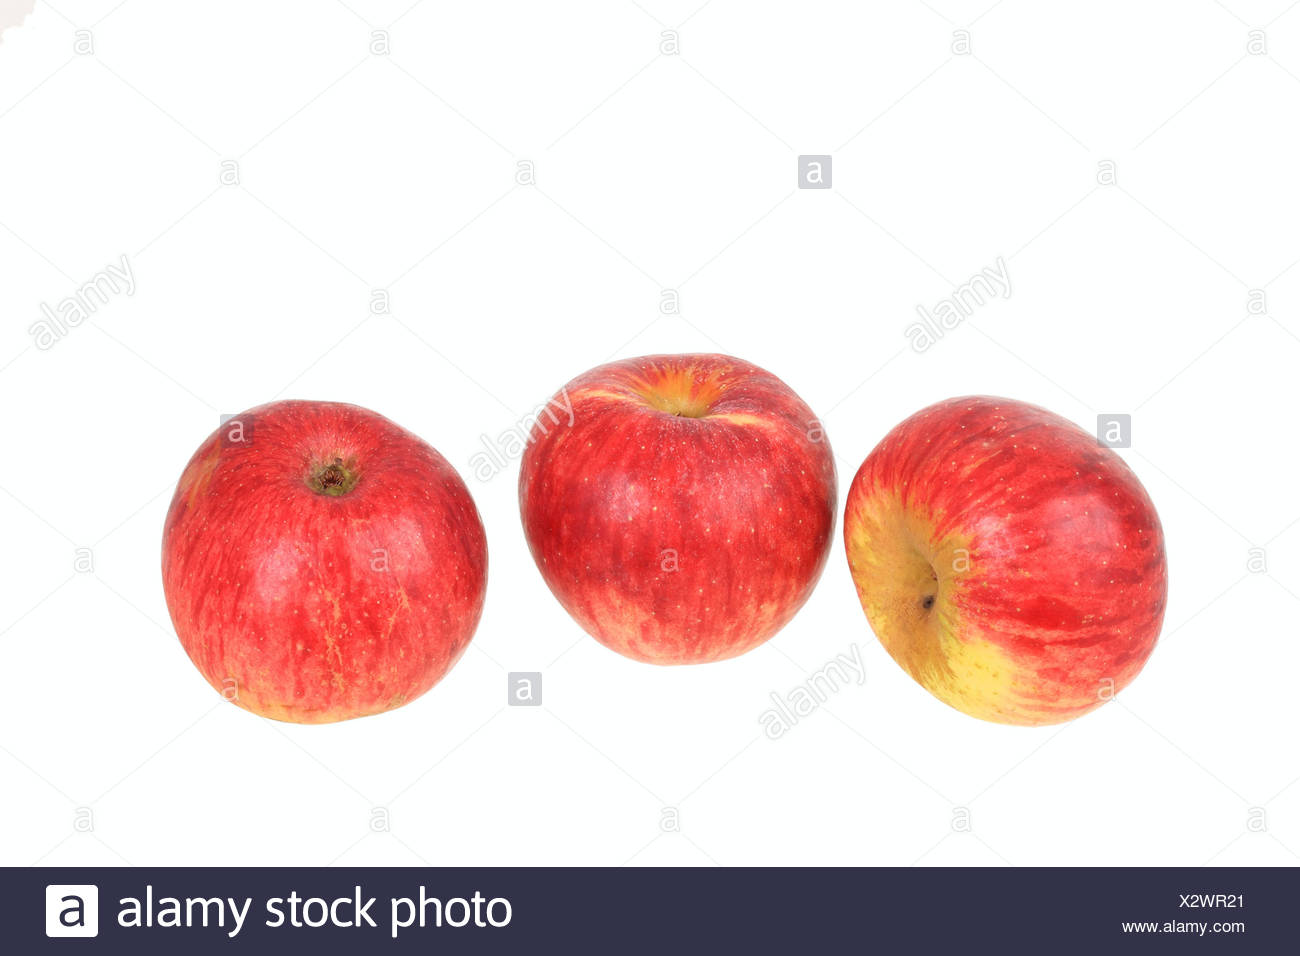 Apples, Gewuerzluiken variety, traditional sort for producing cider - Stock Image